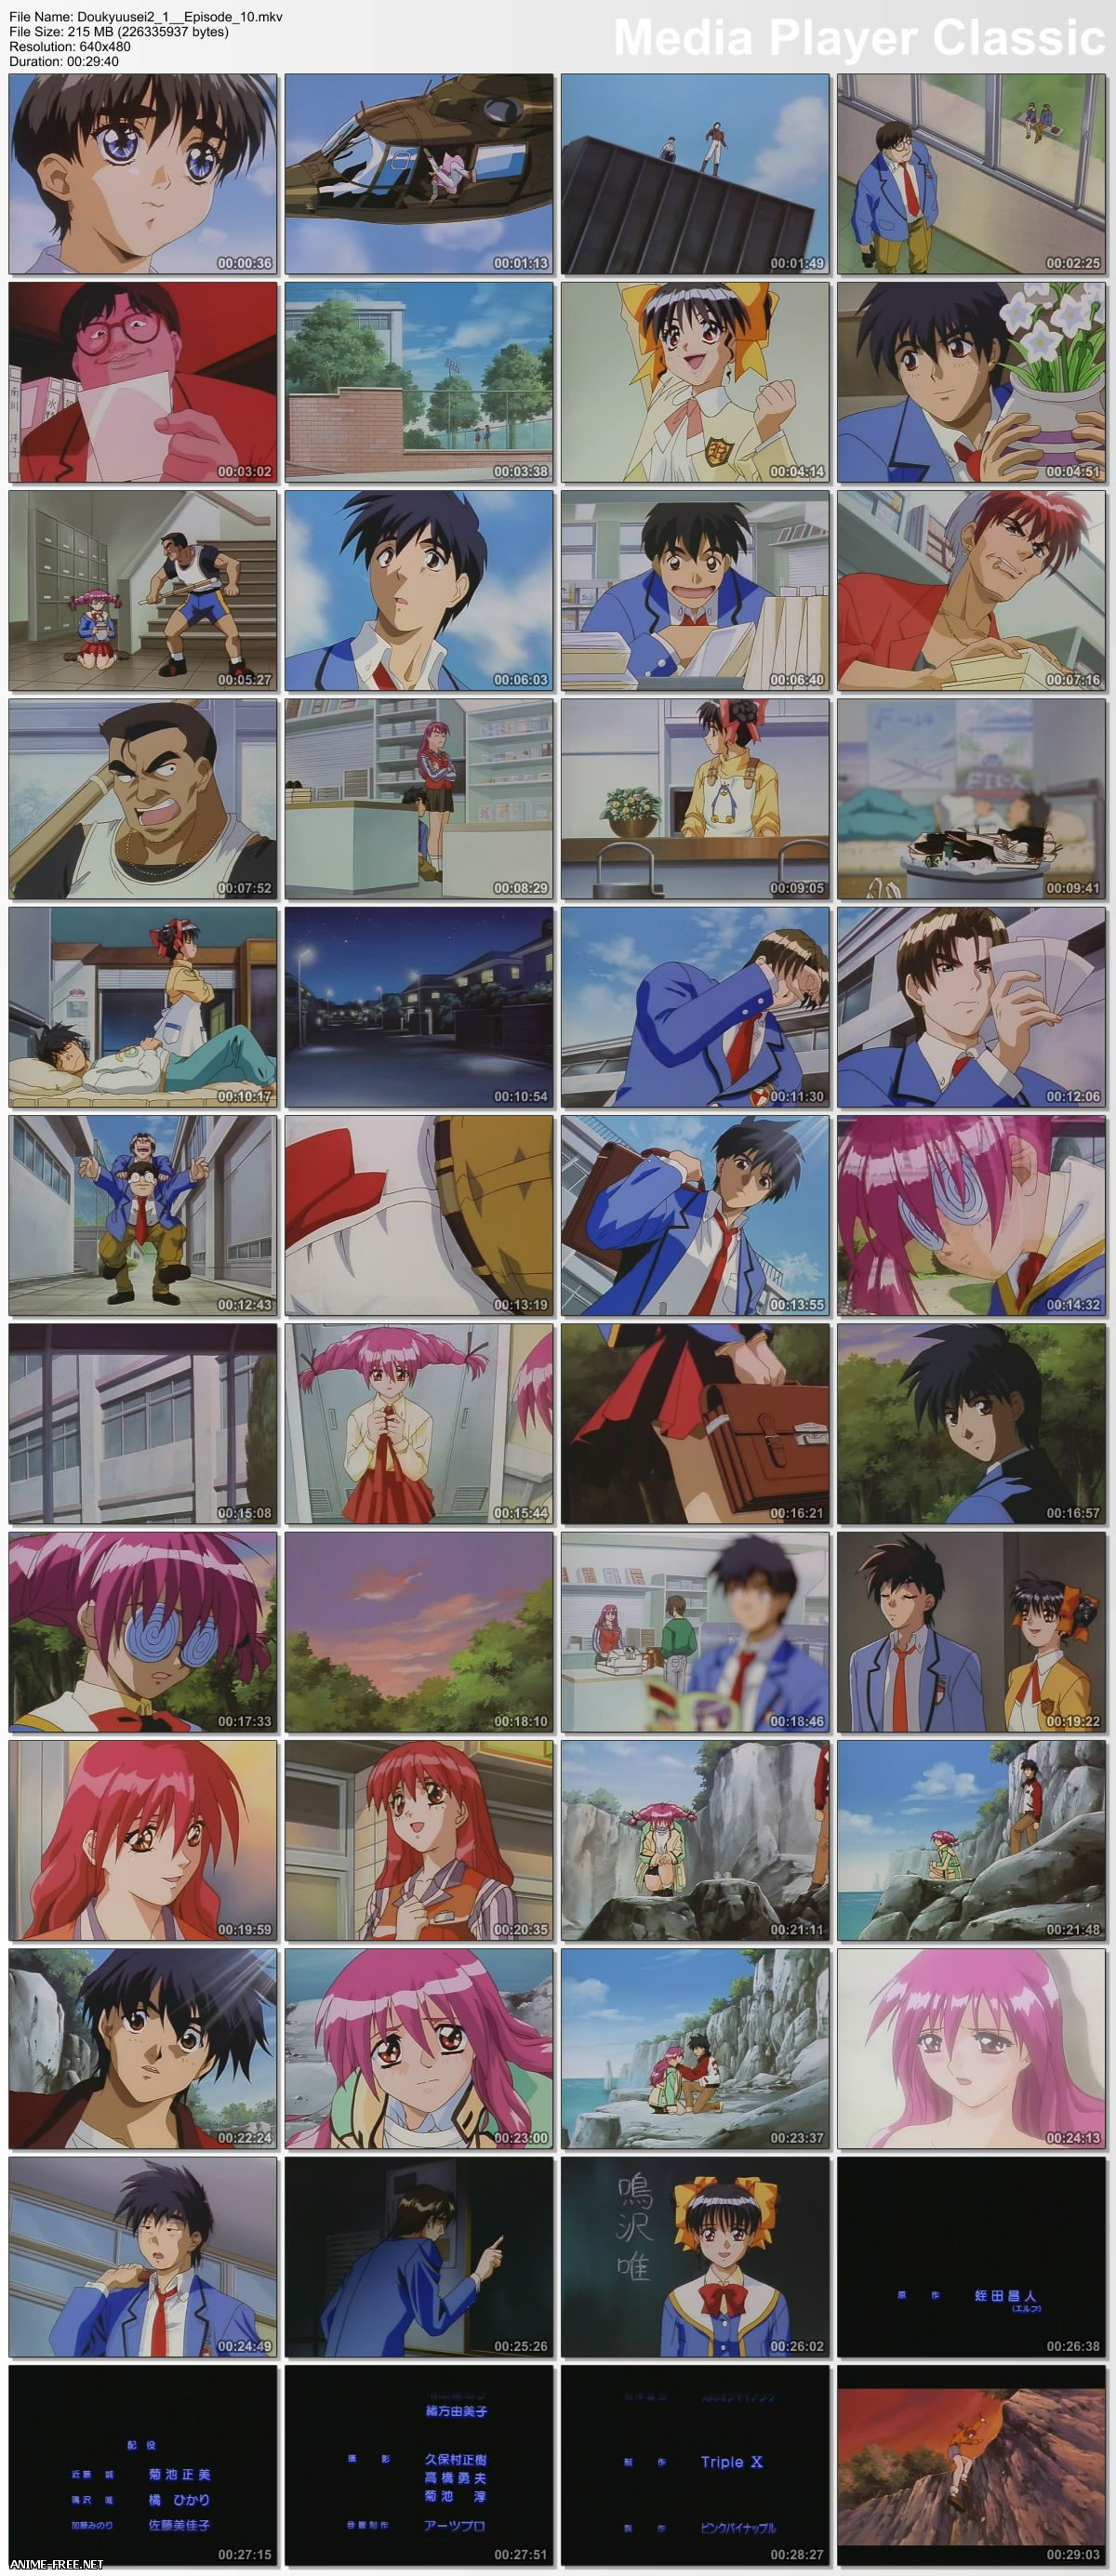 Classmates / Classmates / ������������� - Full Collection / ������ �������� [OVA] [Uncen] [DVDRip] [RUS,ENG,JAP]